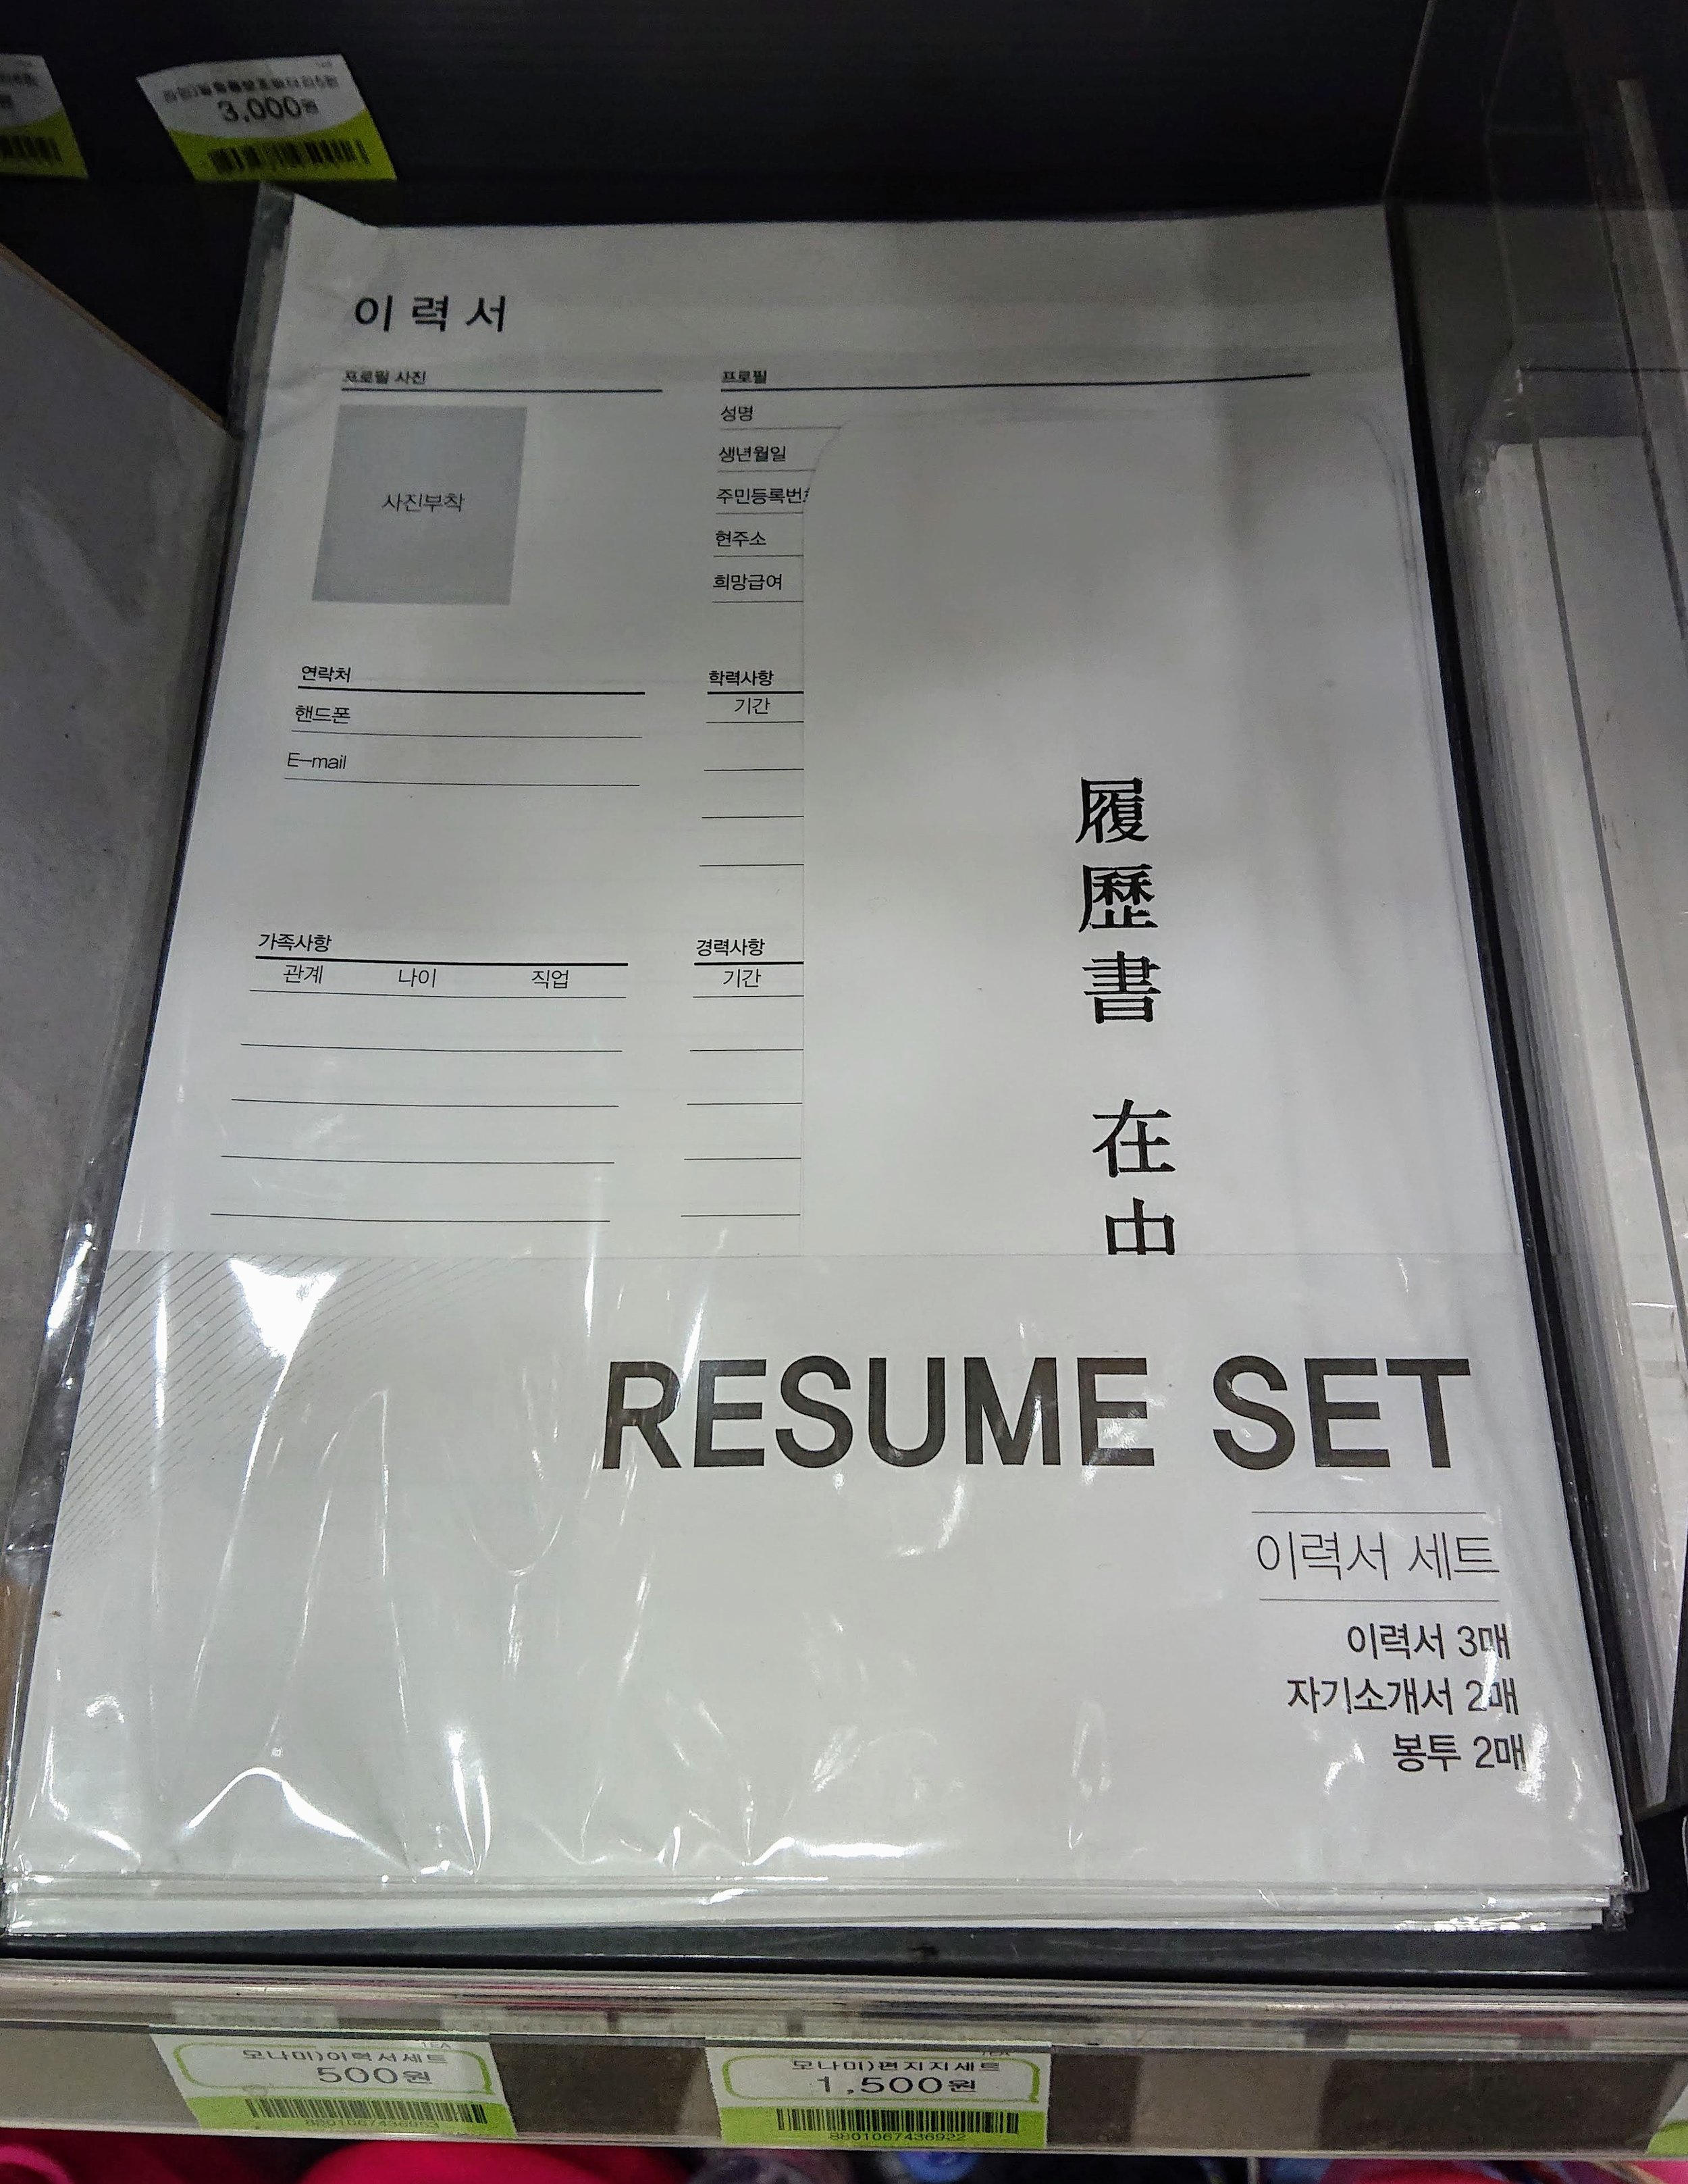 We went to the GS convenience store right next to our motel in search of post-dinner beers and snacks, and came across this. Only in South Korea could you find a resume template in such a location.